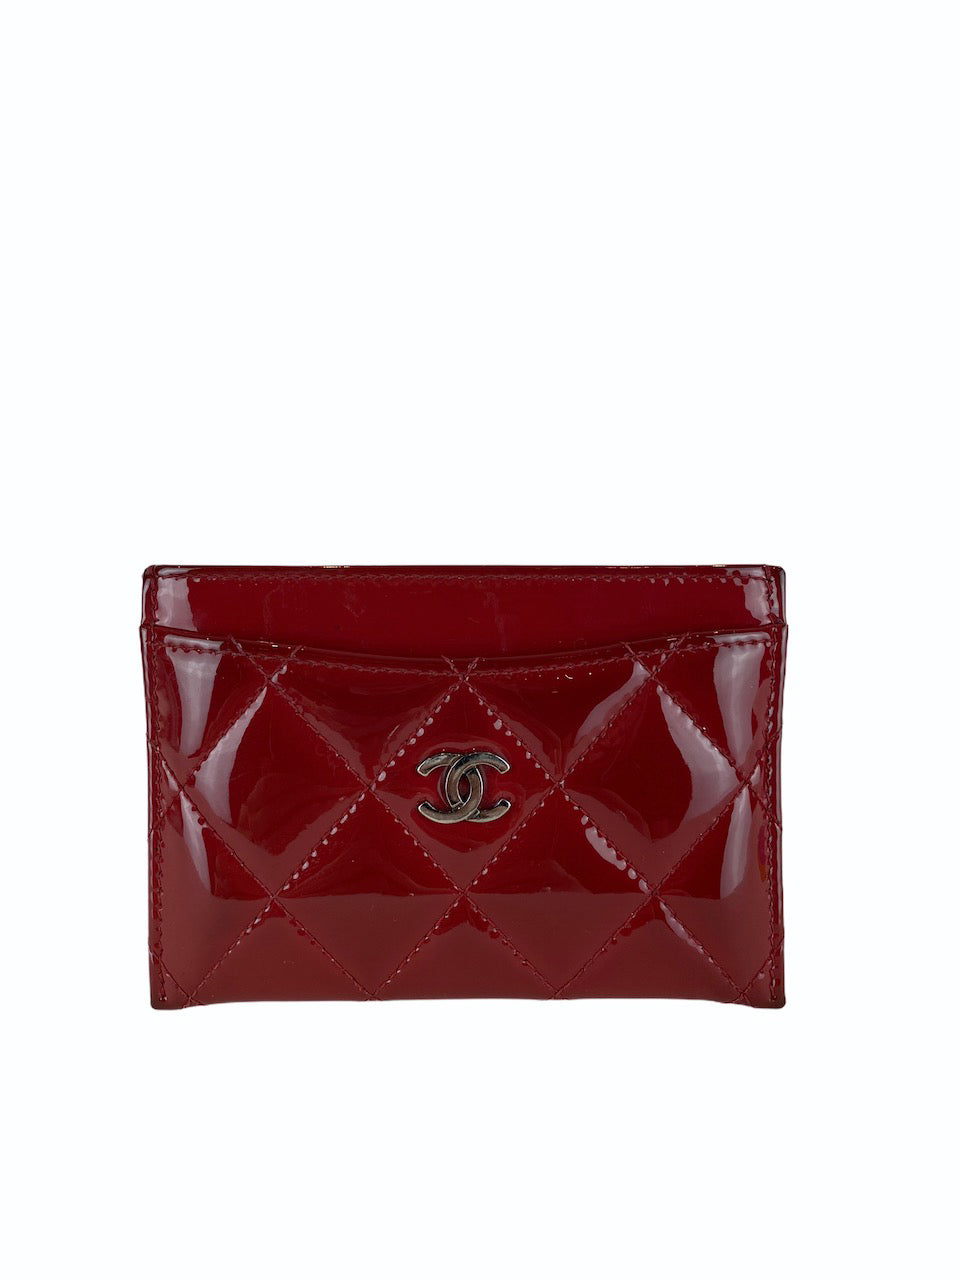 Chanel Red Patent Leather Card Holder